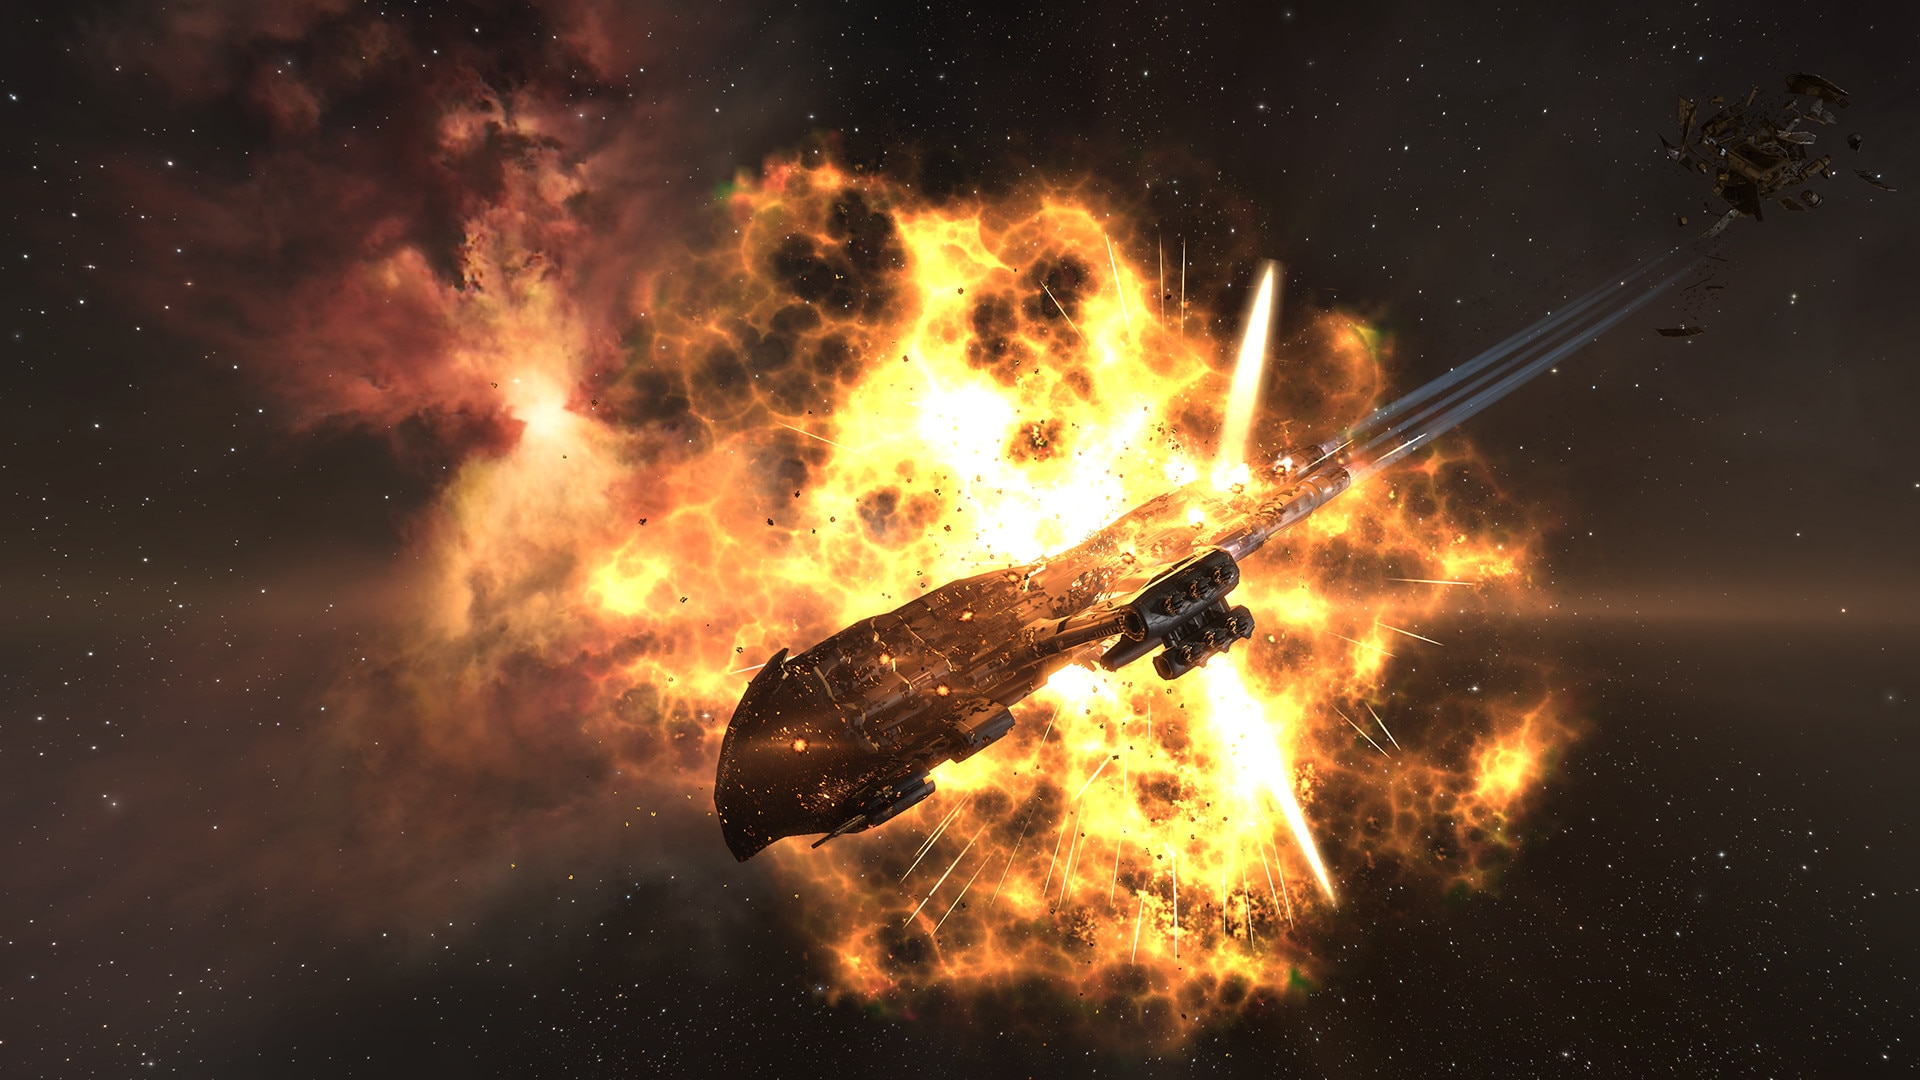 EVE ONLINE: STAR PACK Other Key GLOBAL - 1